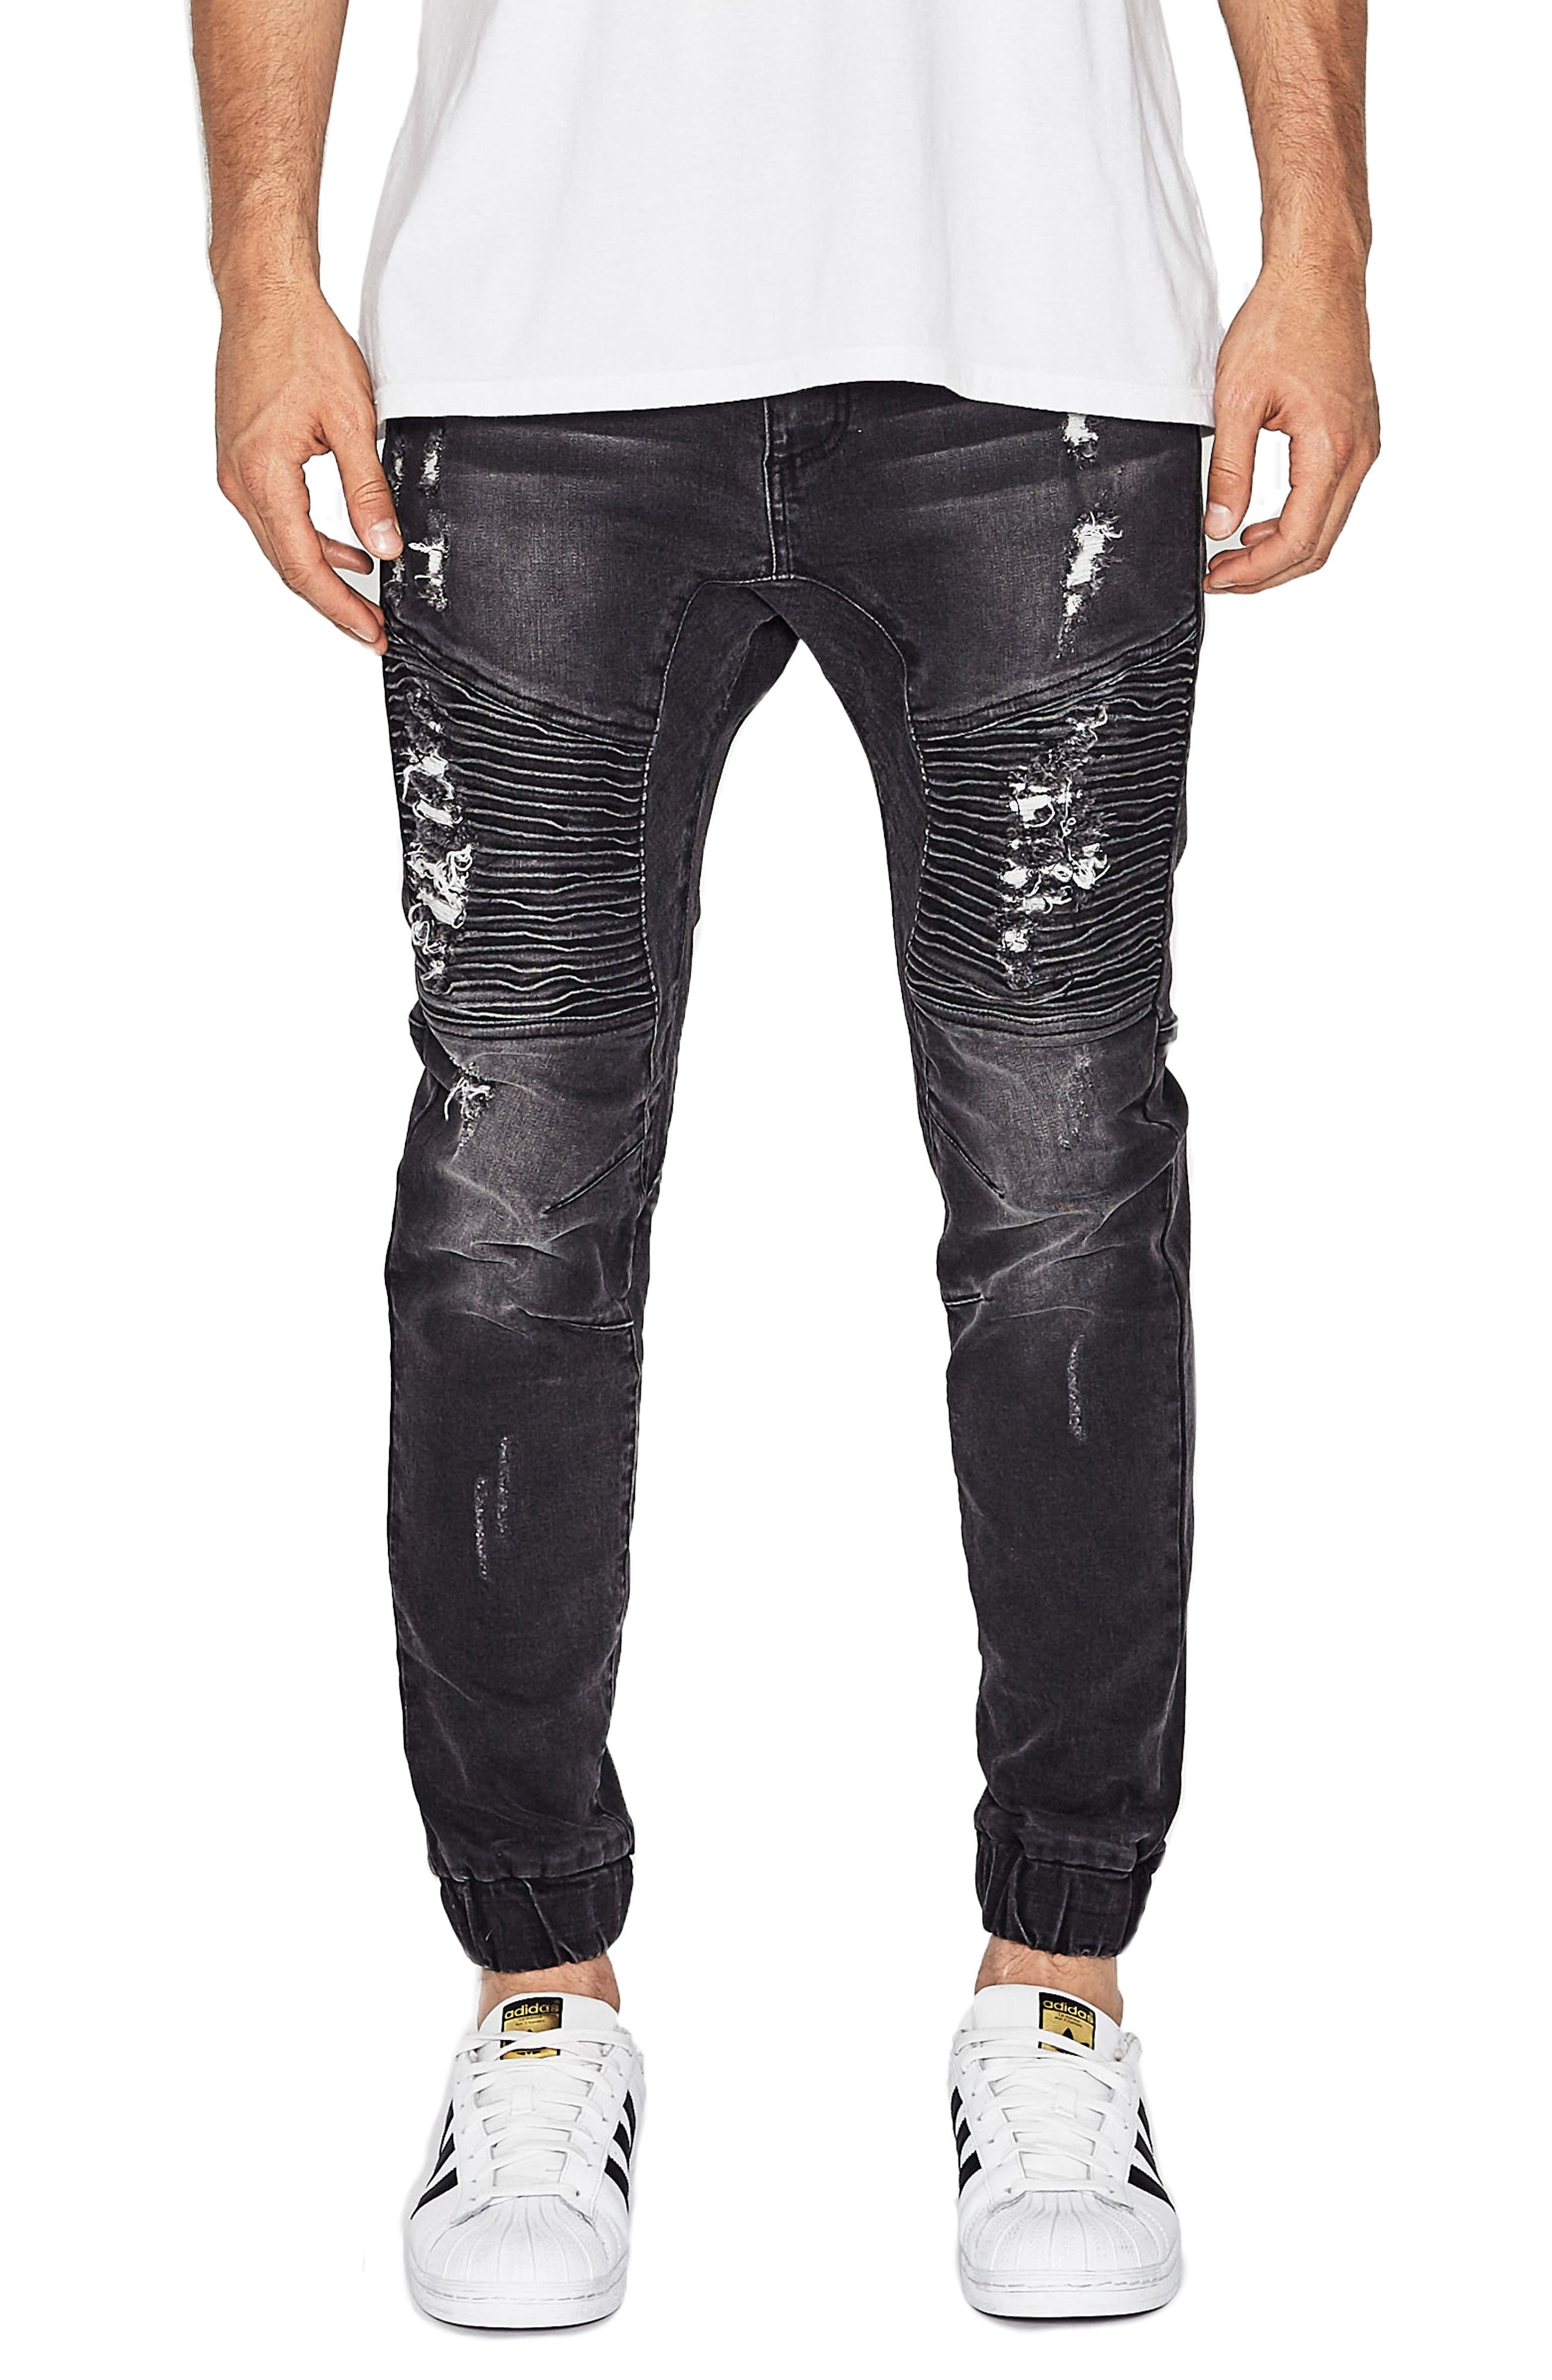 Destroyer Moto Denim Jogger Pants,                             Main thumbnail 1, color,                             014